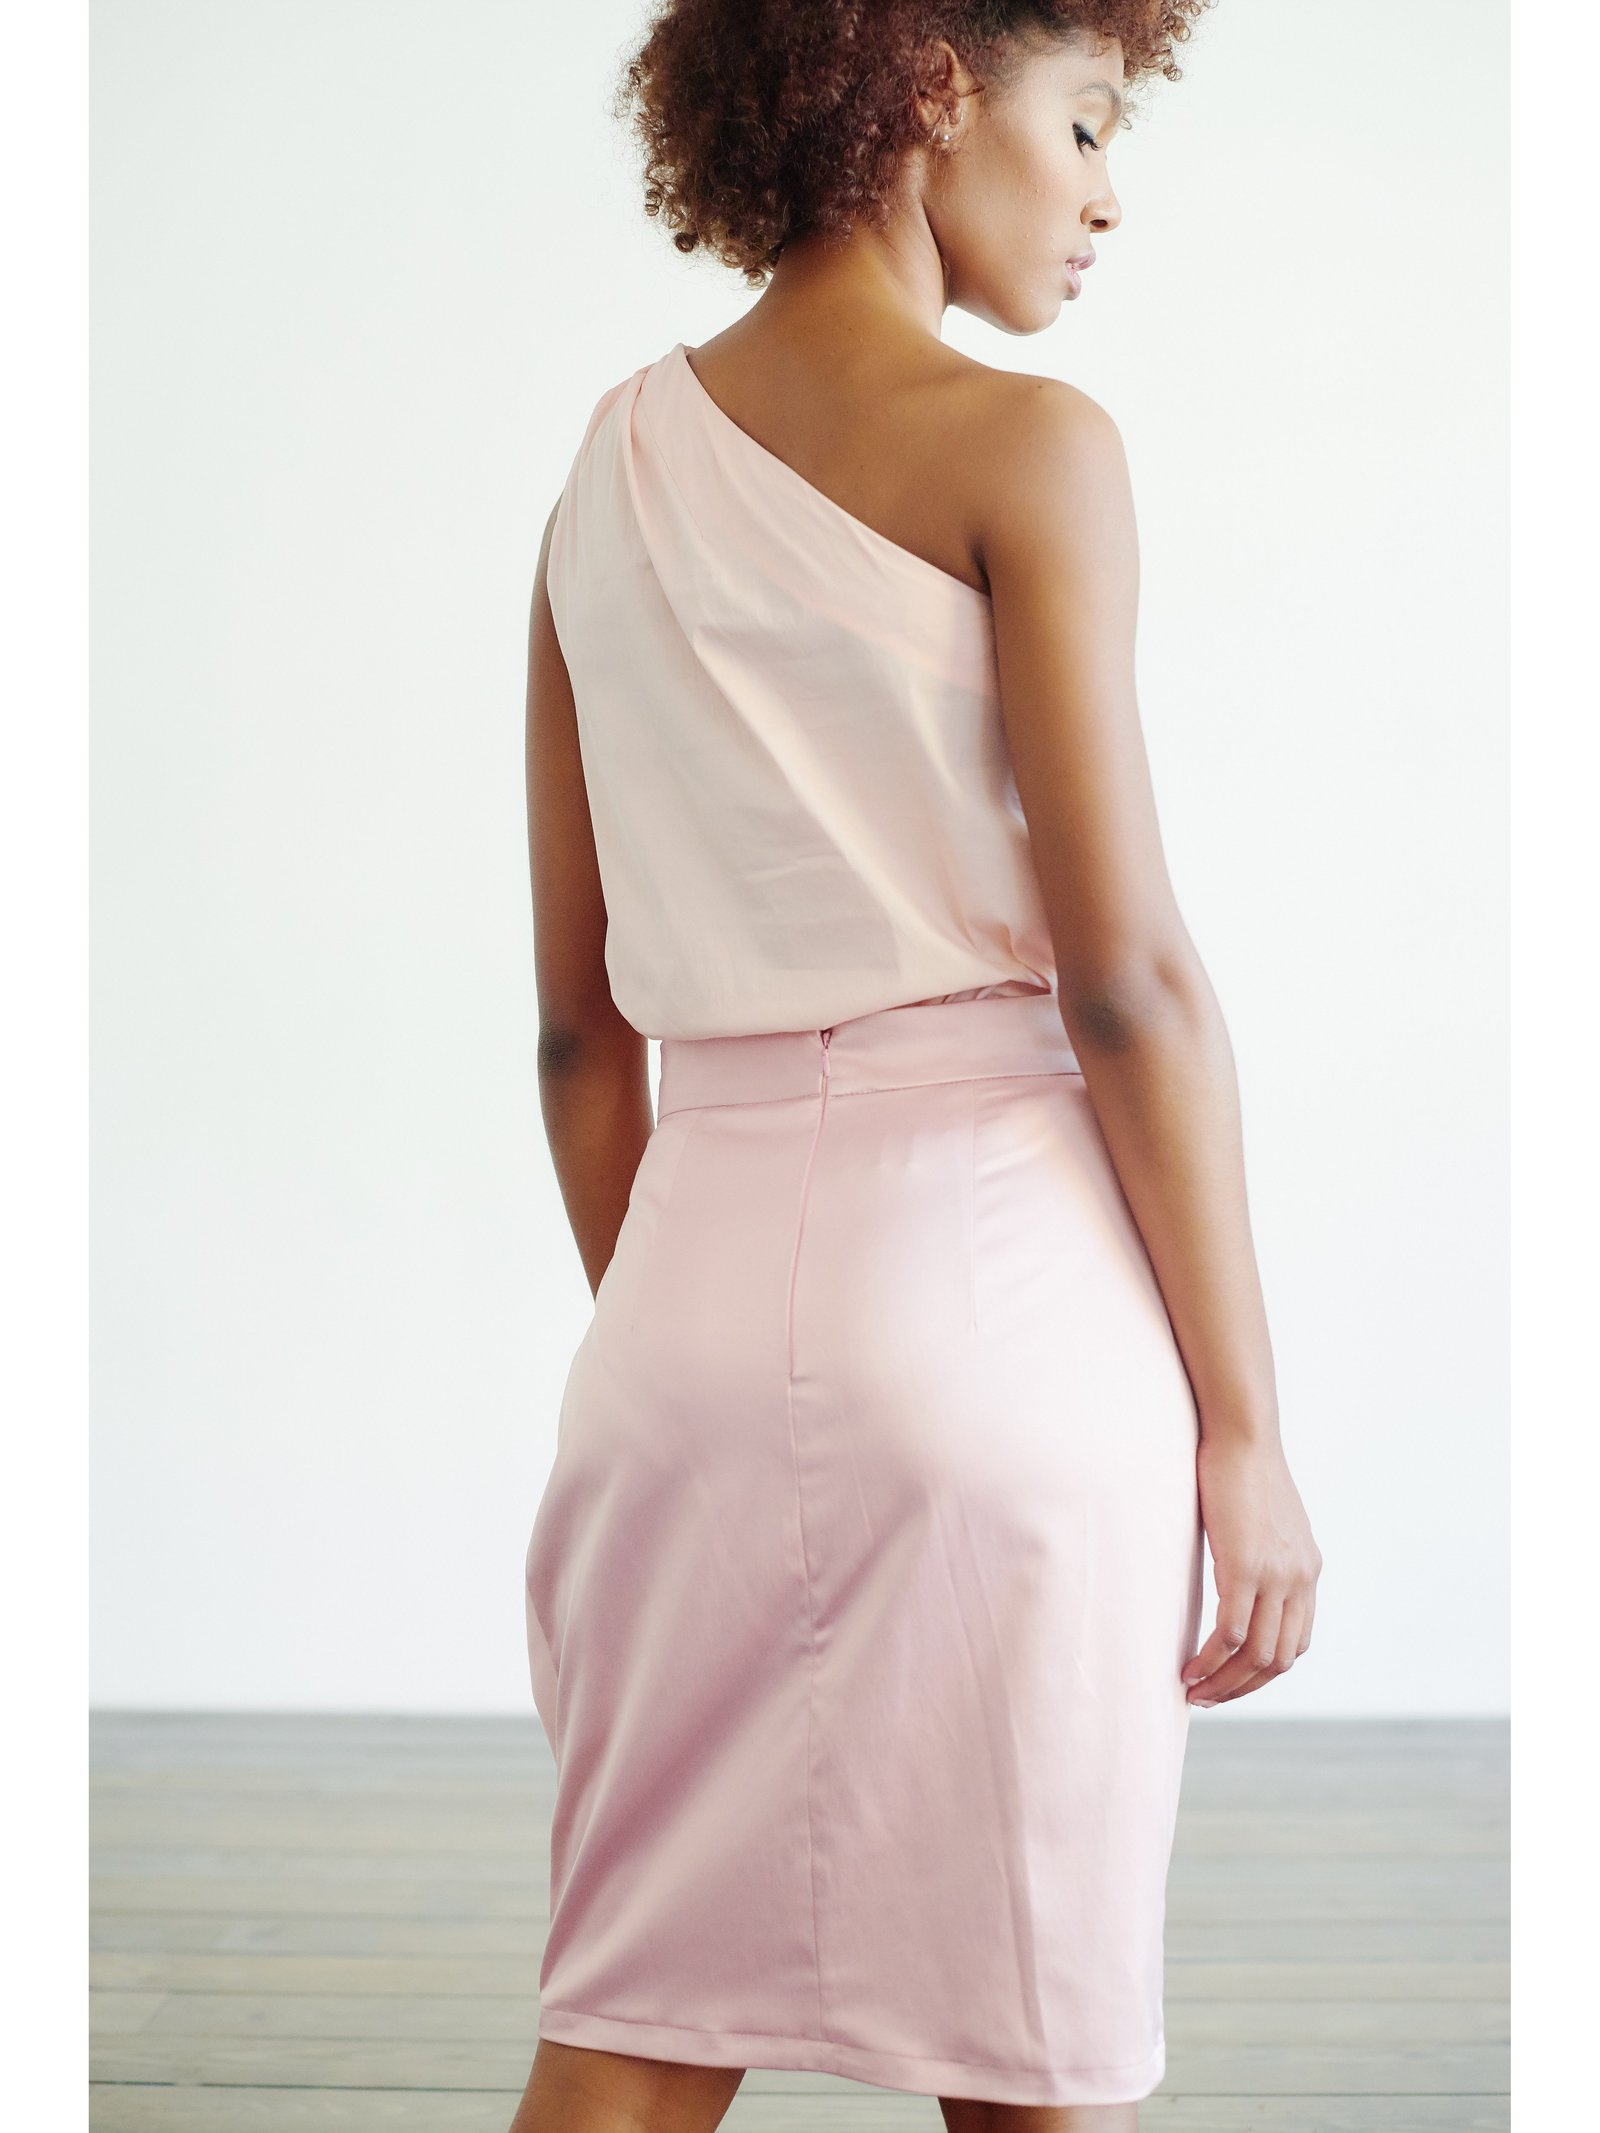 HB By Hanna Baranava Bow Skirt